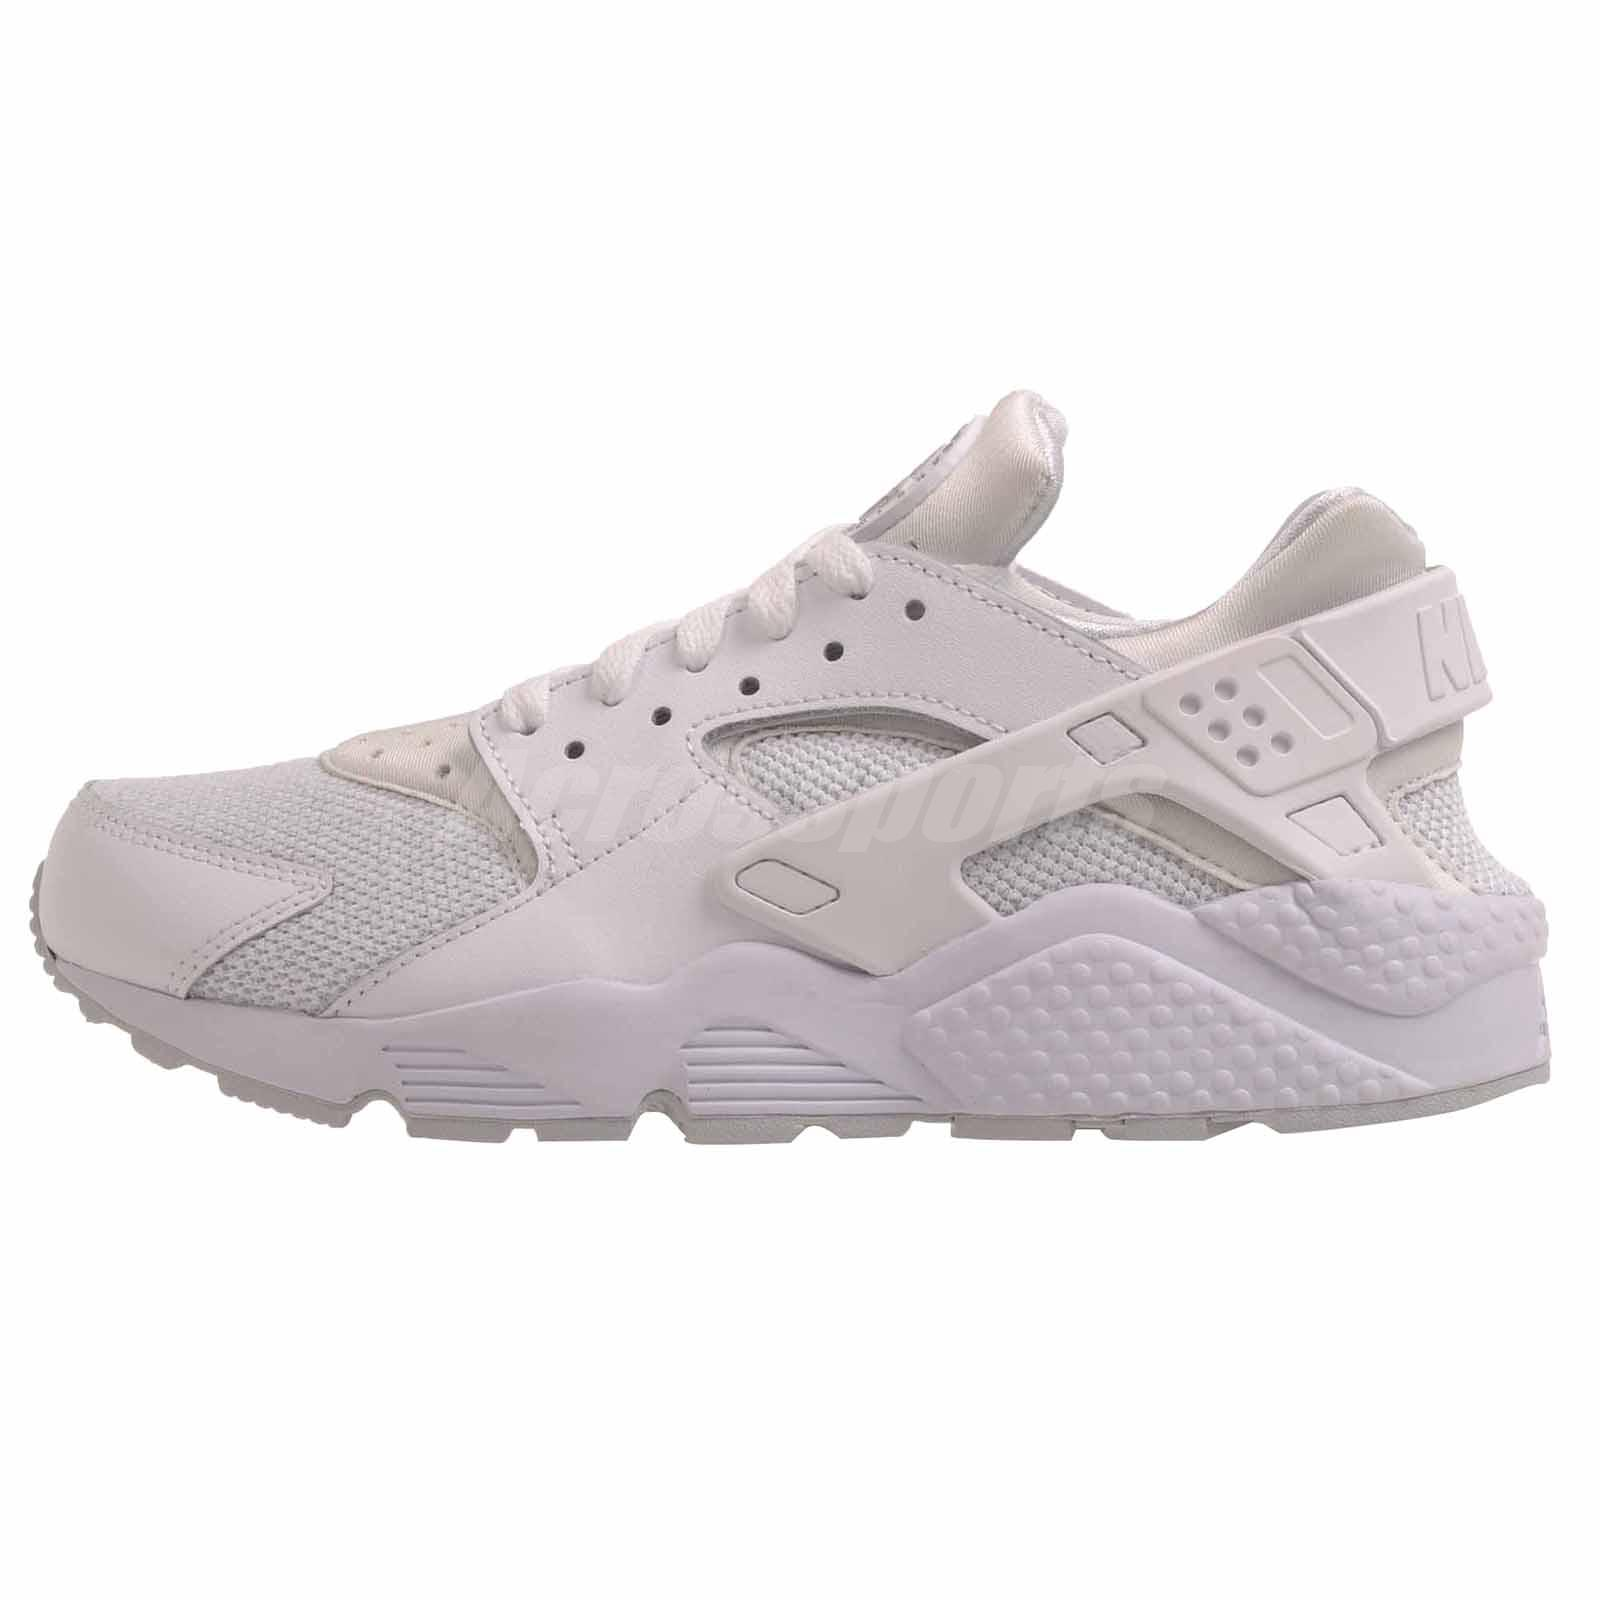 Nike Air Huarache Running Mens Shoes White Platinum 318429-109